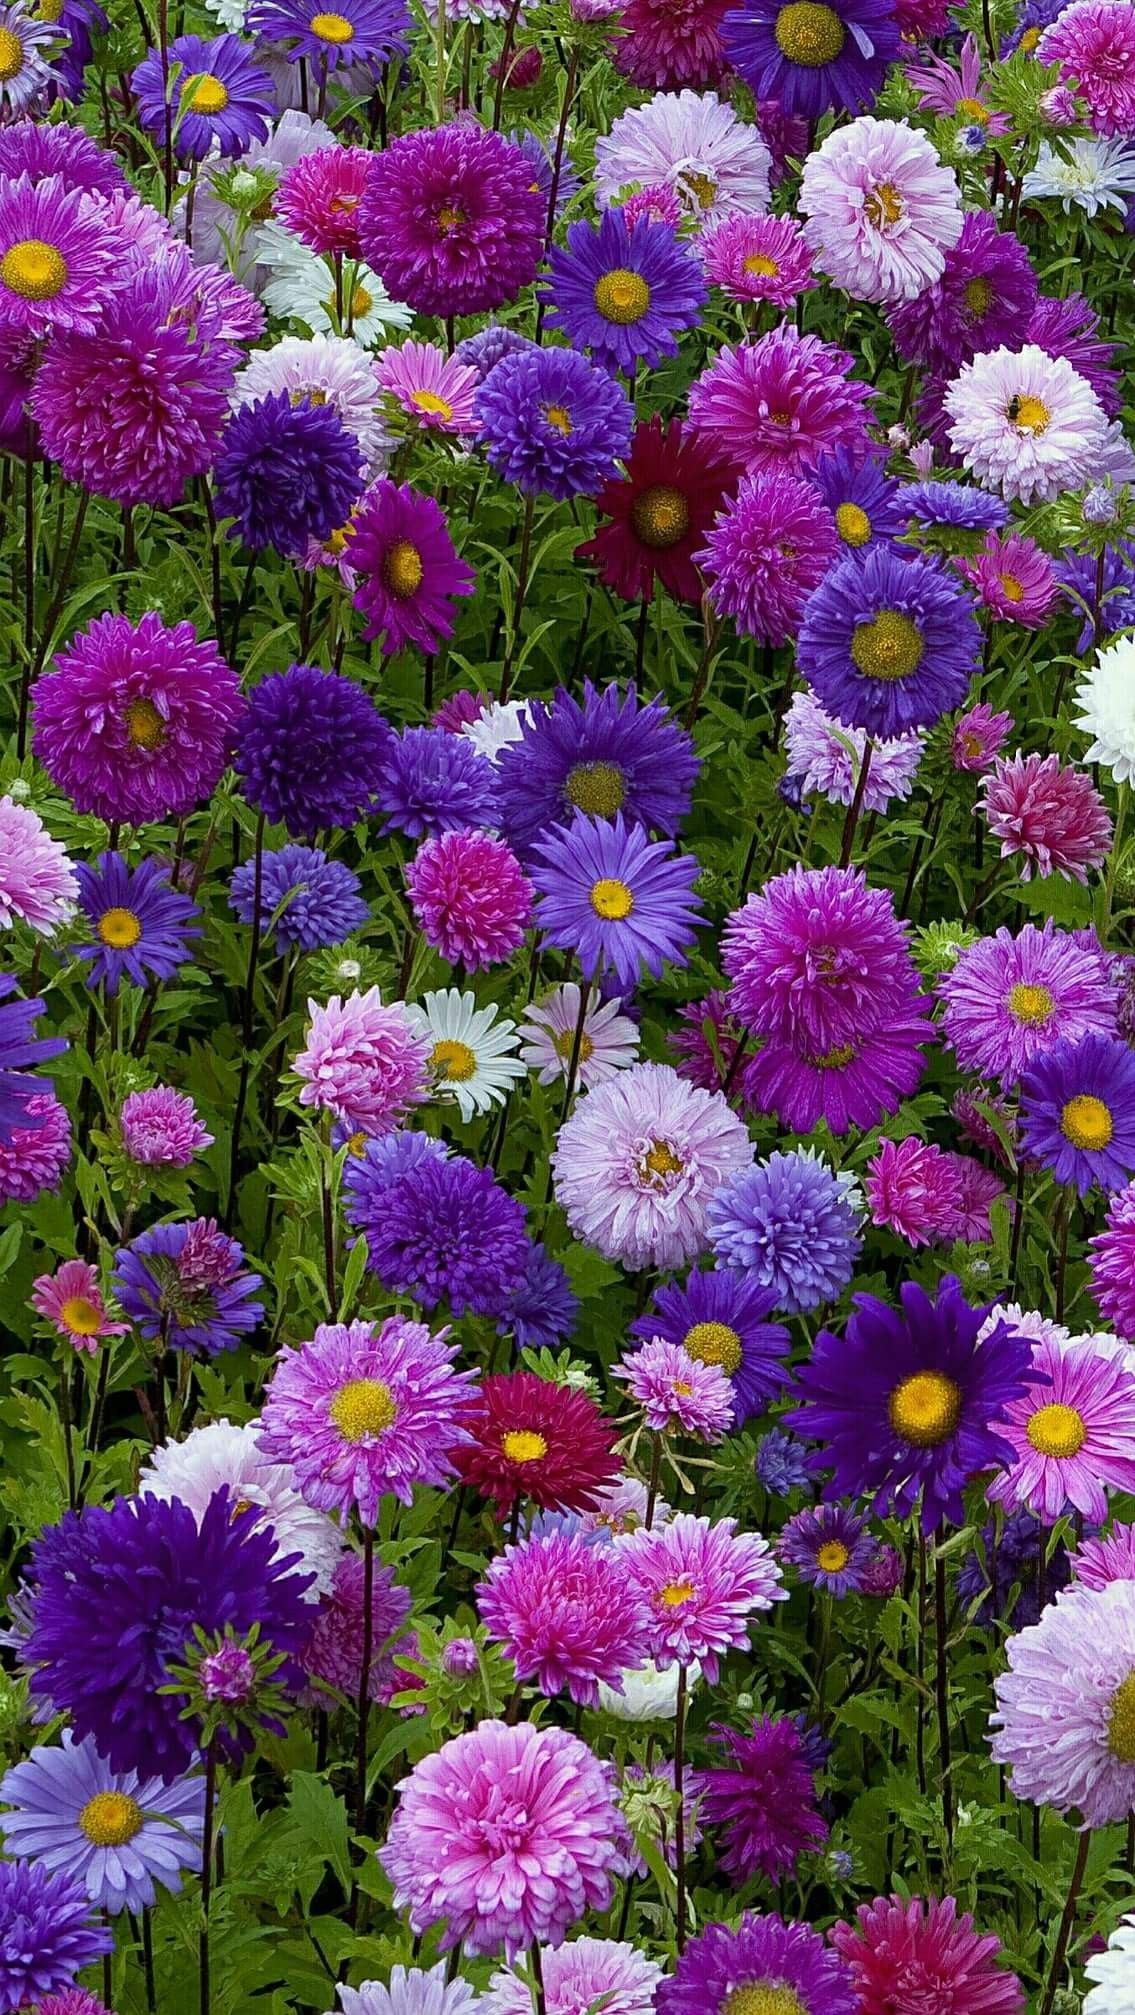 My Mother Loved Asters She Had Lots Growing In Her Garden Flowers Nature Beautiful Flowers Flower Garden